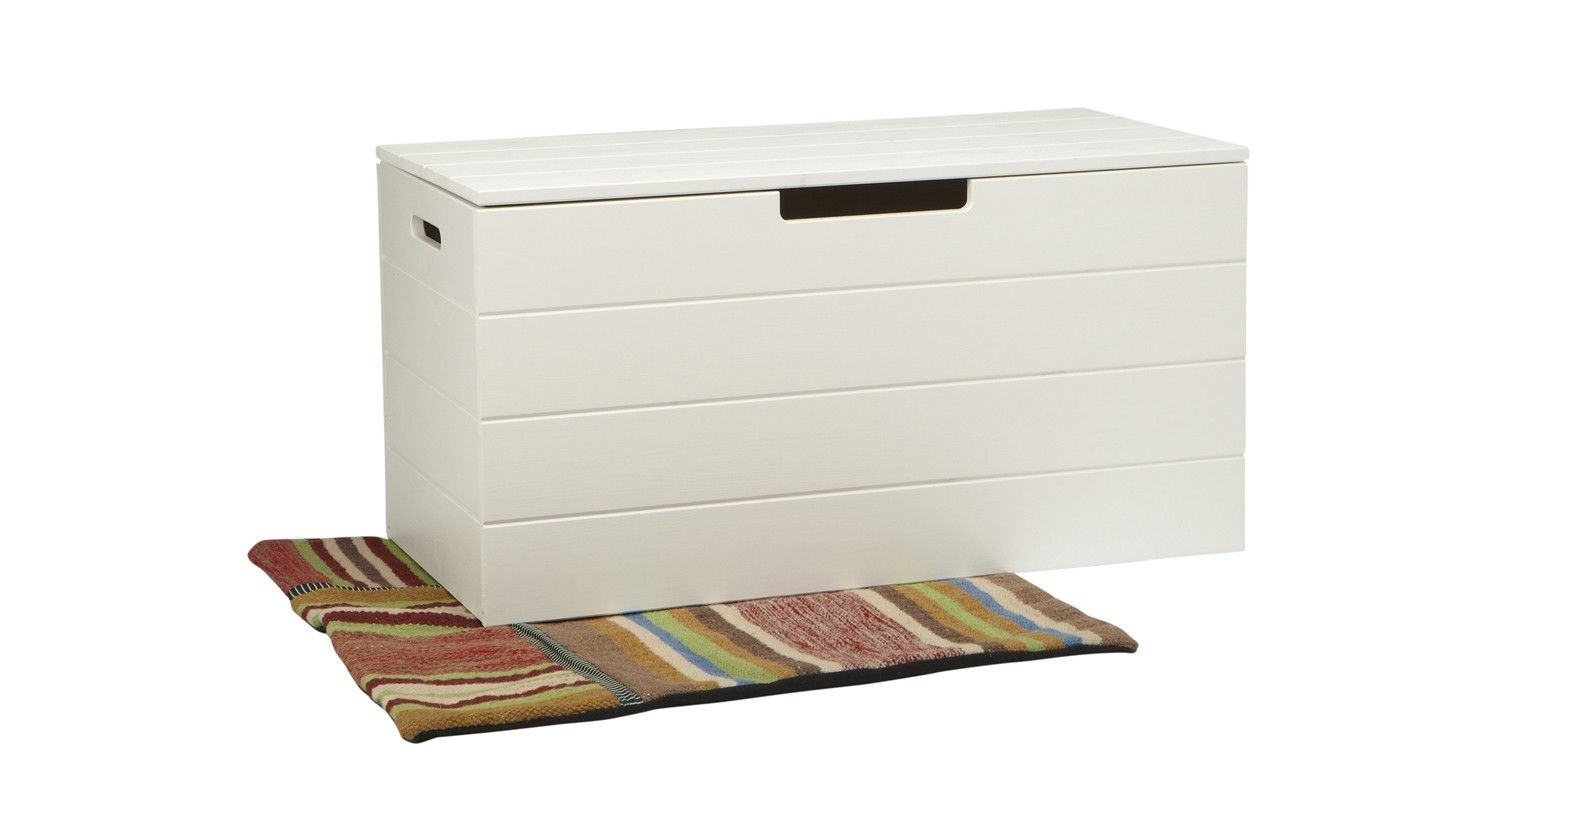 Deep Wooden Chest In Clic White Providing Valuable Storage Across The Home With Its Slow